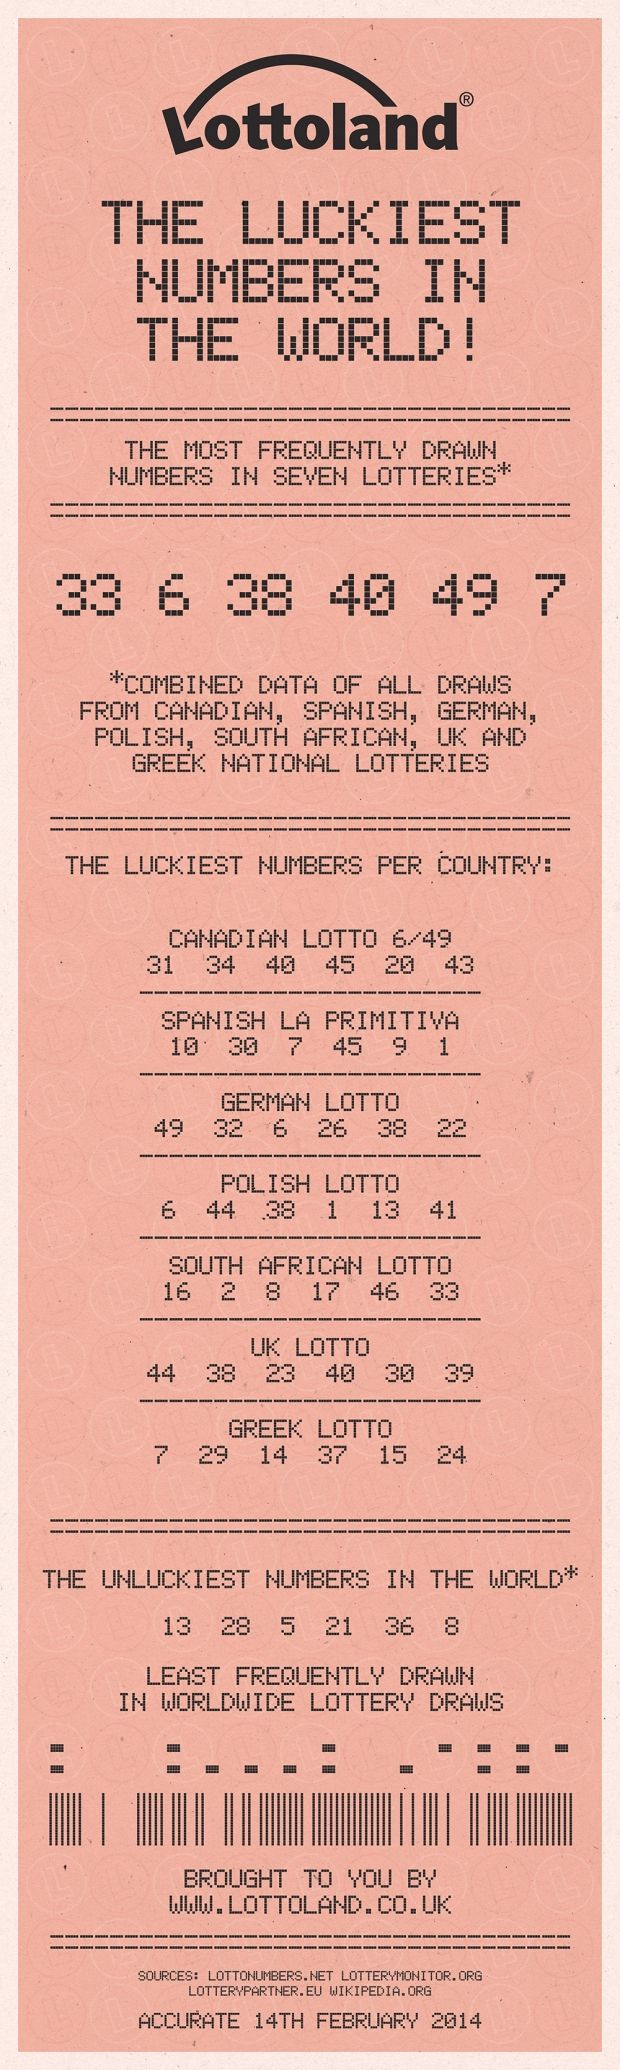 The world's luckiest lottery numbers